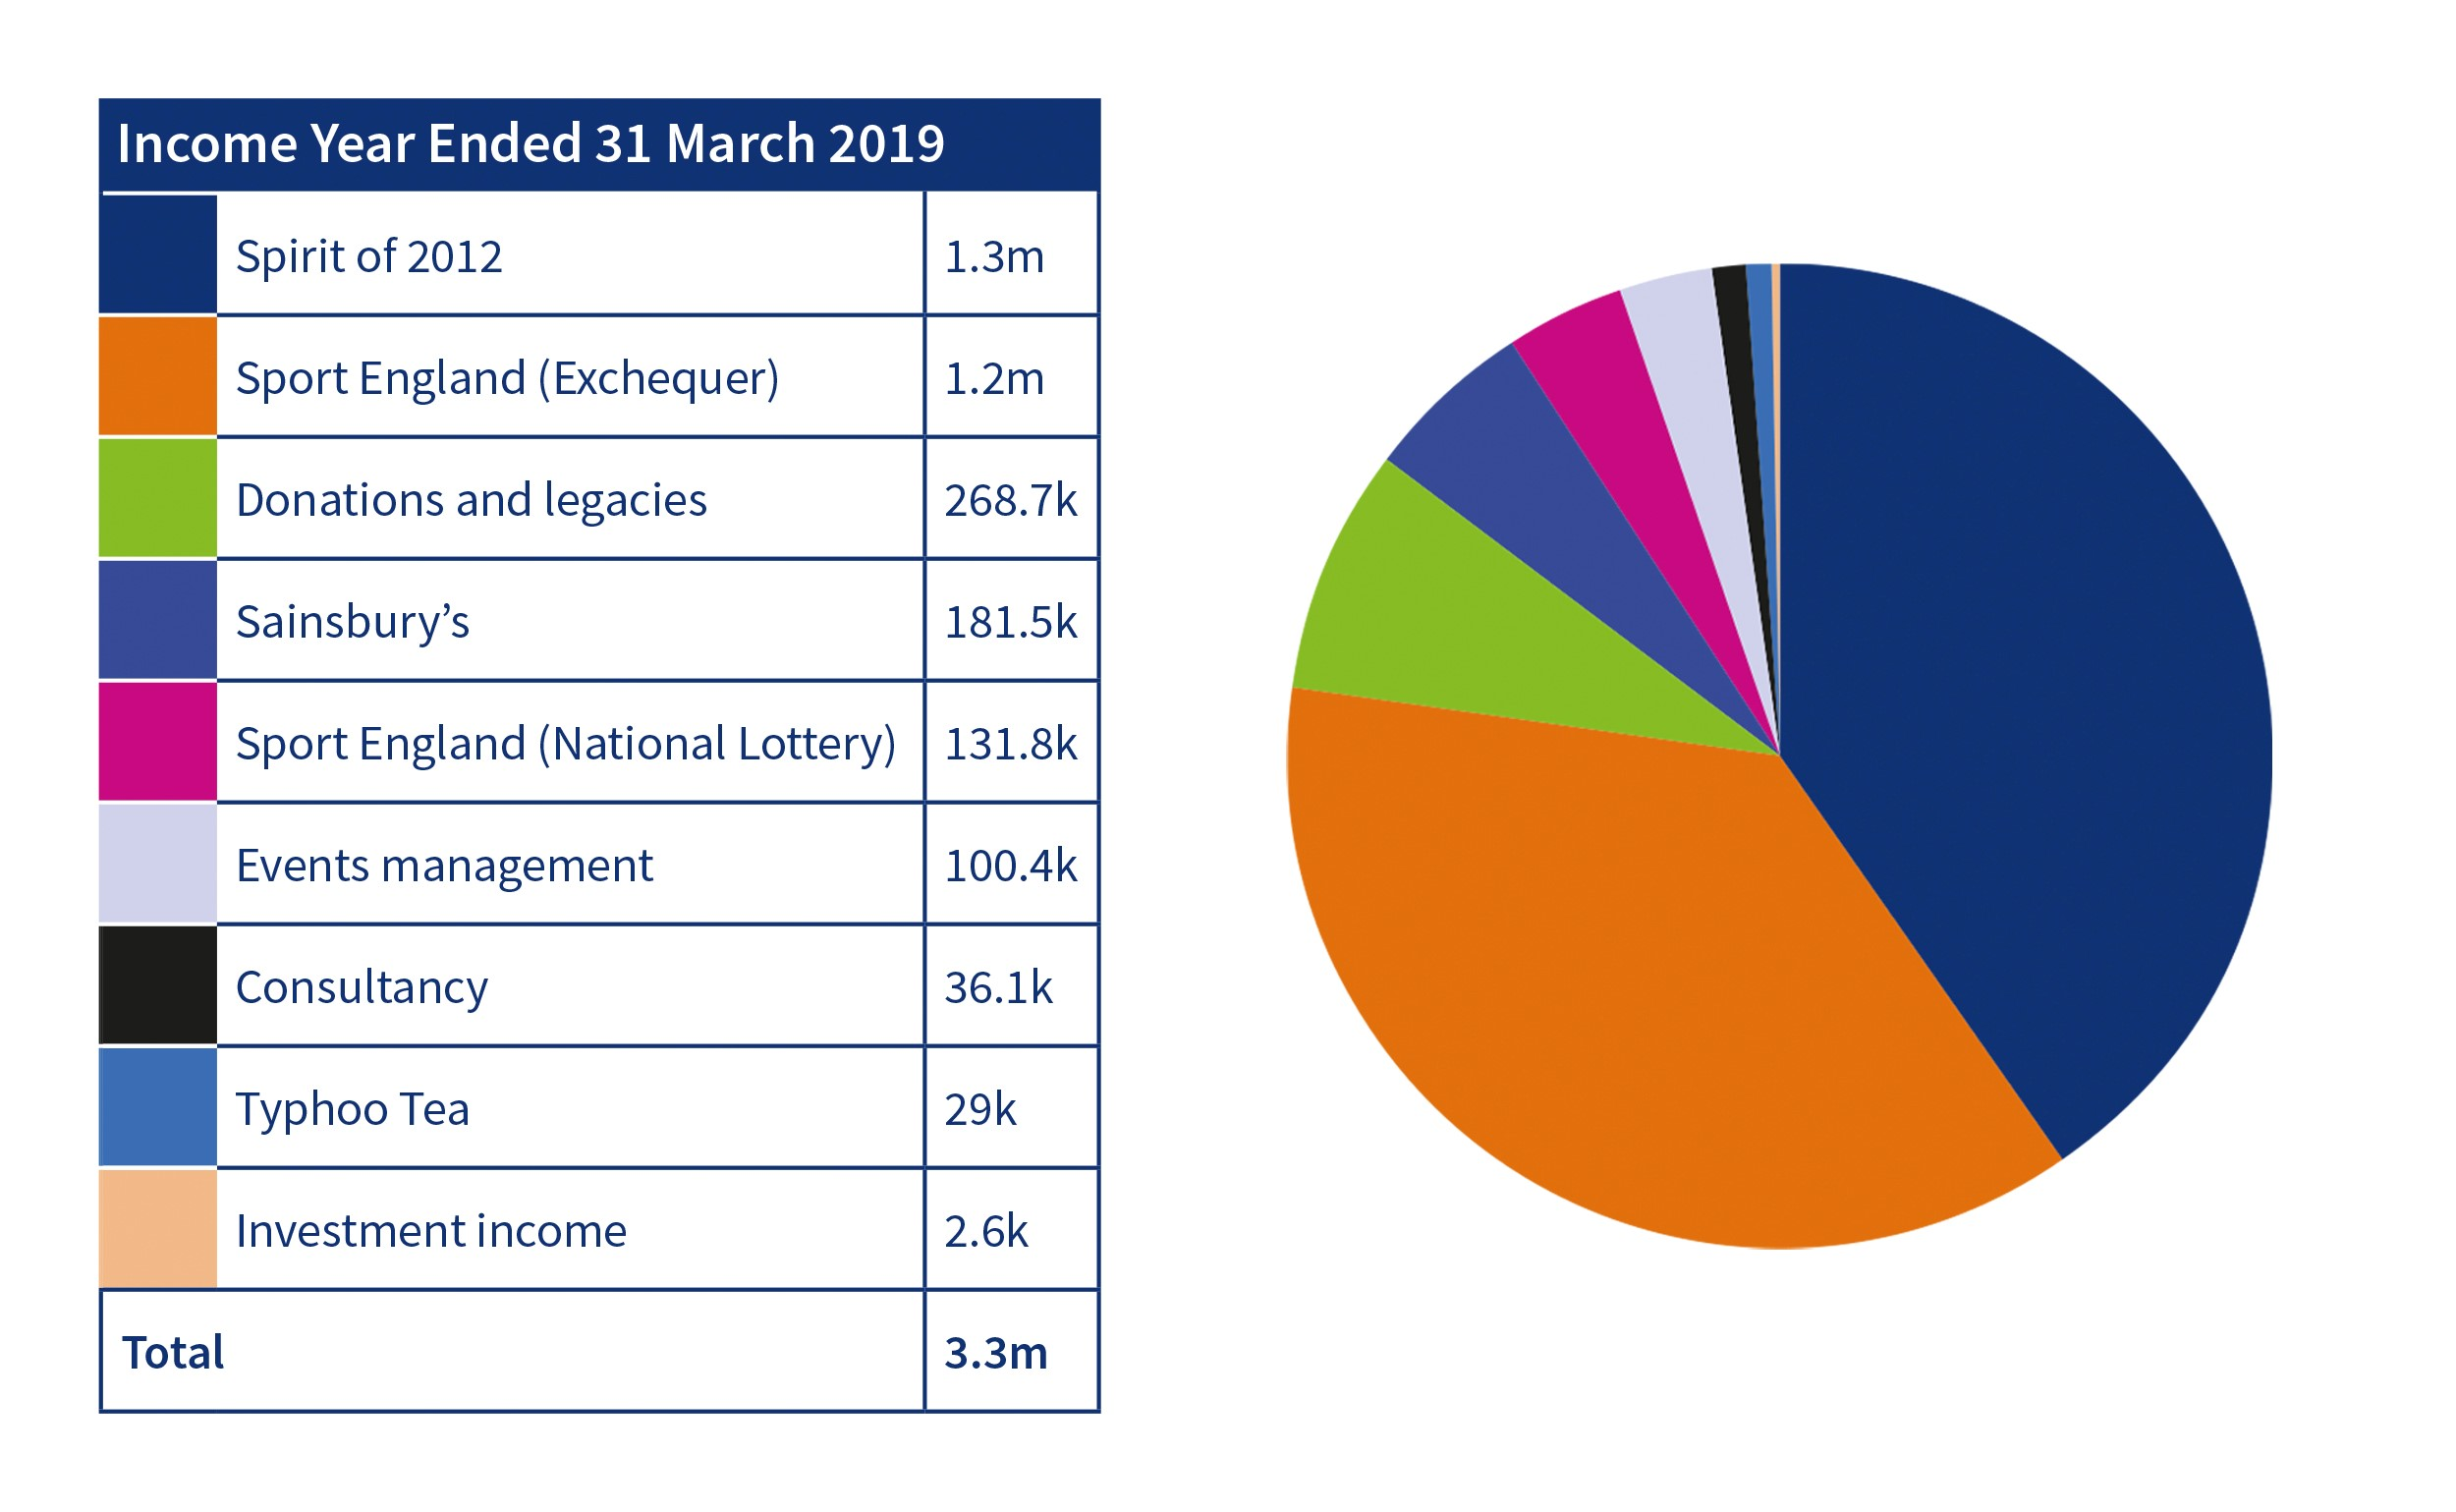 Activity Alliance income year ended 31 March 2019 table and pie chart